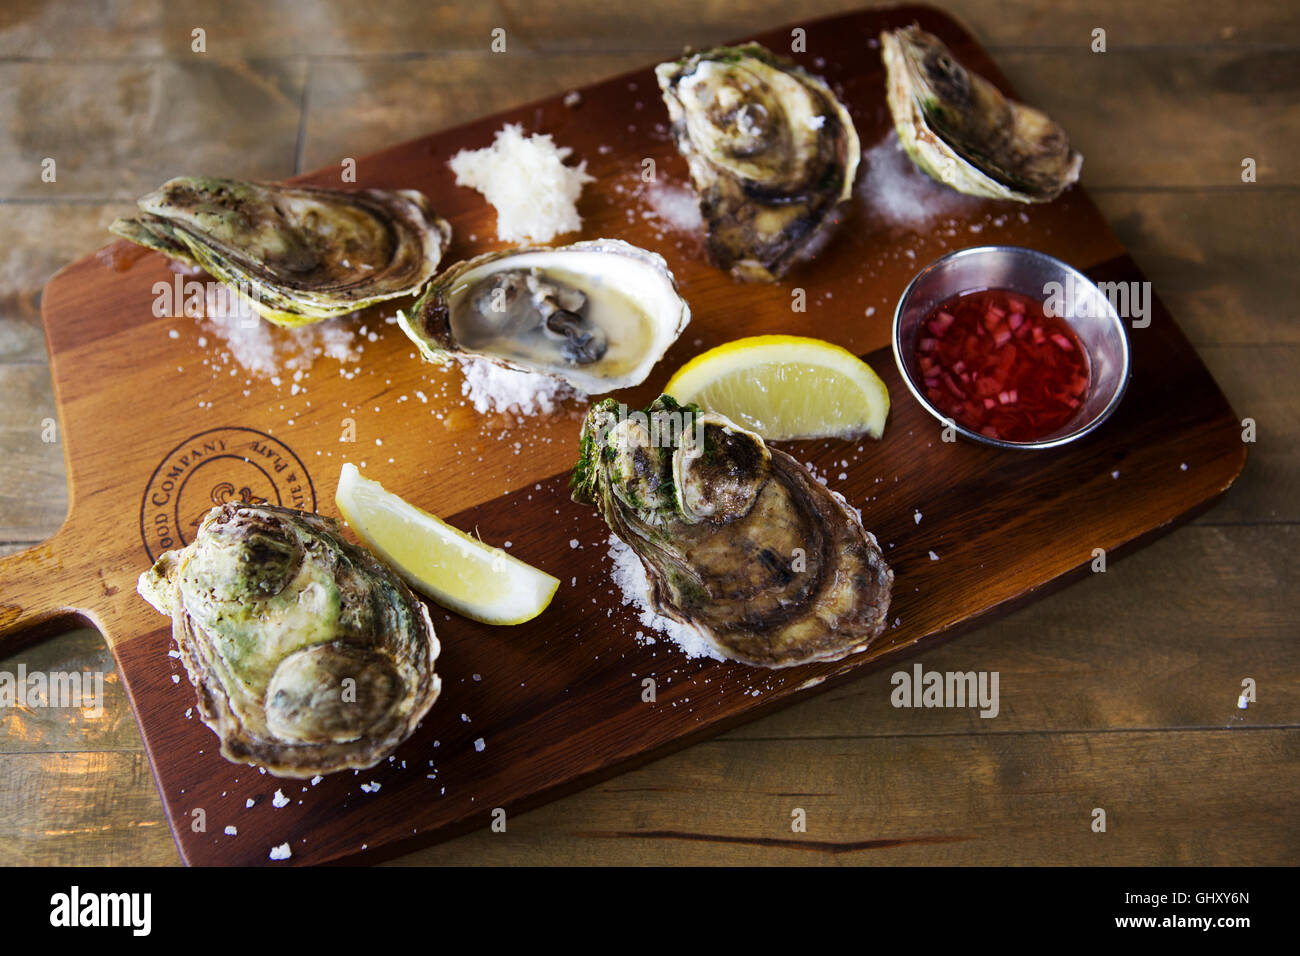 A board of Price Edward Island oysters served at St John's in Newfoundland and Labrador, Canada. - Stock Image